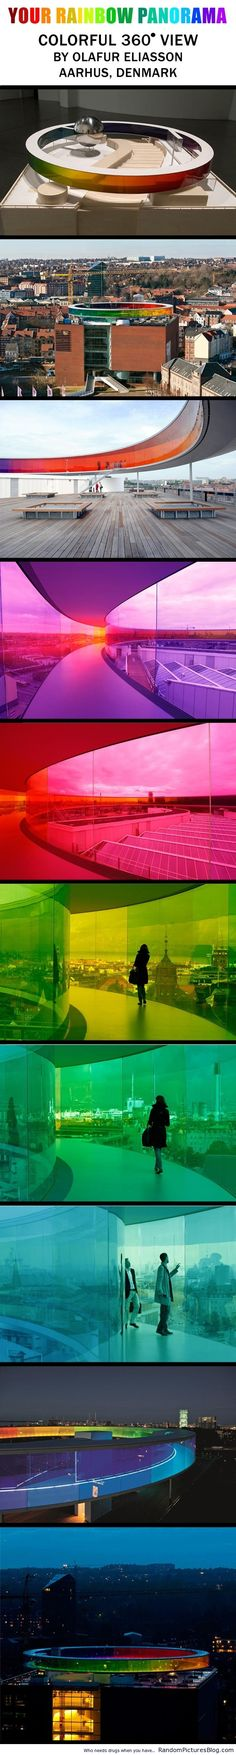 Your rainbow panorama – Olafur Eliasson on top of the AROS Museum of Art in Aarhus, Denmark